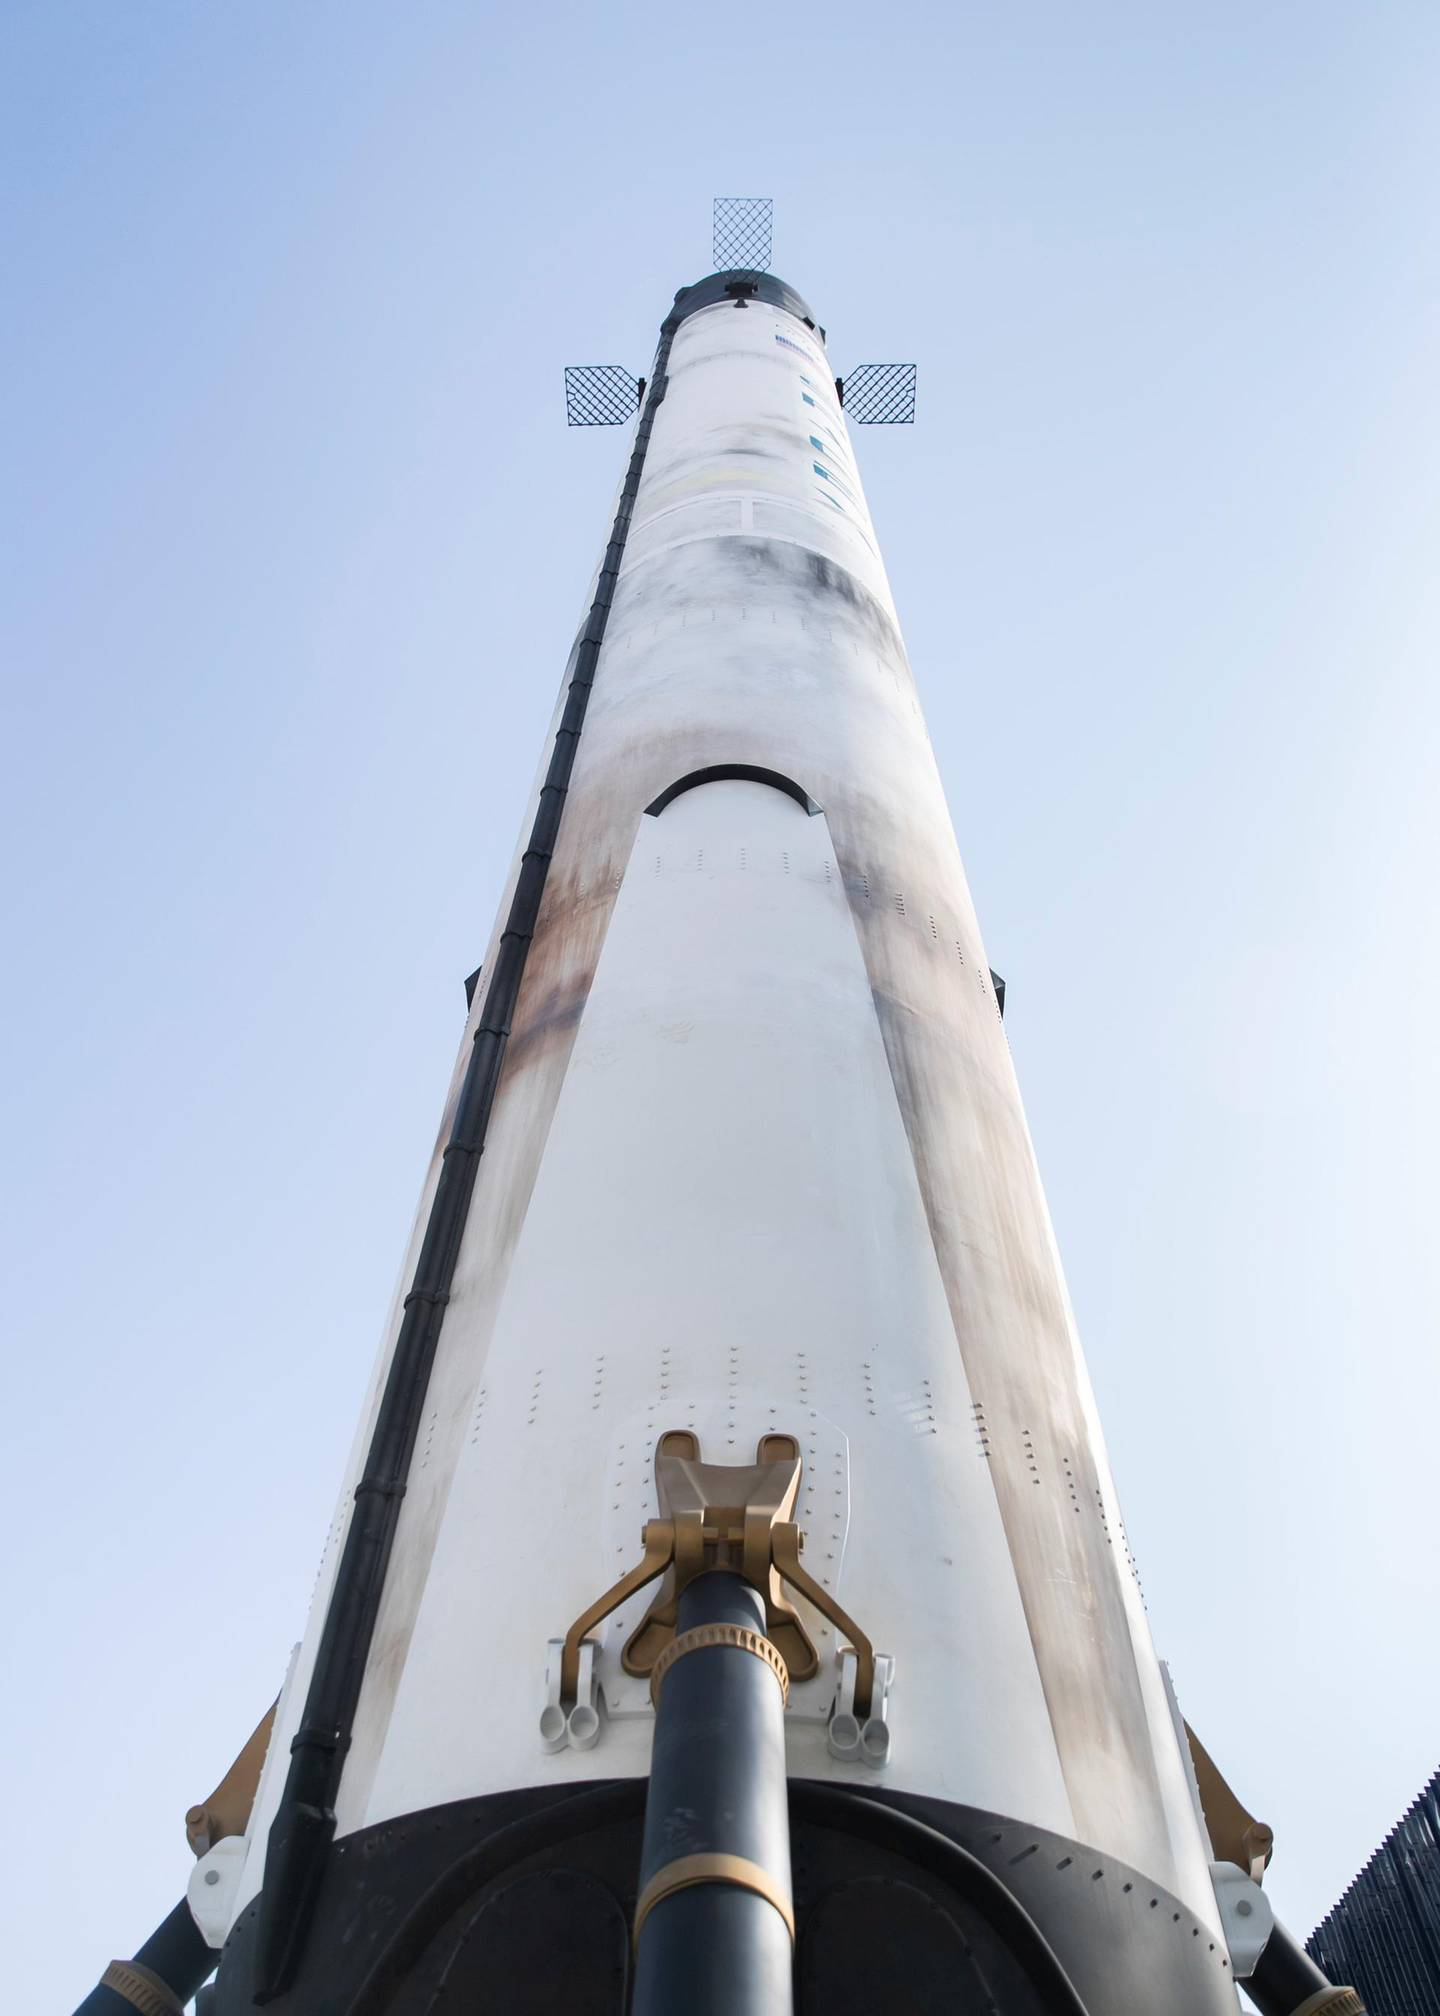 DUBAI, UNITED ARAB EMIRATES. 18 NOVEMBER 2020. A replica of the Space X Falcon 9 rocket outside the USA Pavilion at EXPO 2020 site. (Photo: Reem Mohammed/The National)Reporter:Section: